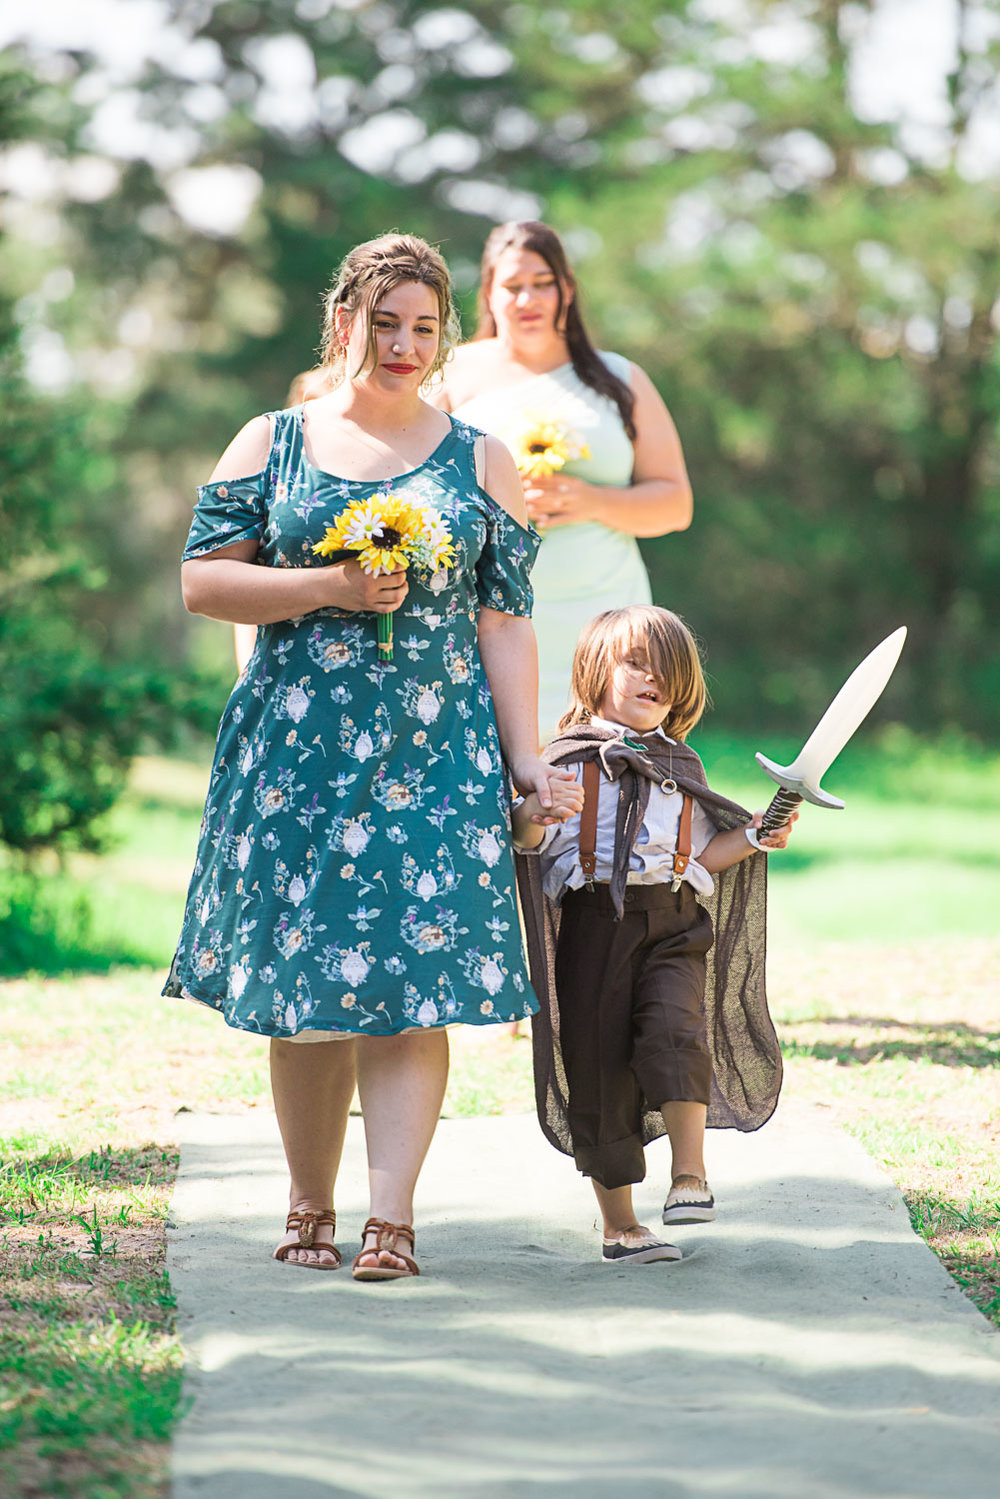 48 wedding with hobbit ring bearer.jpg